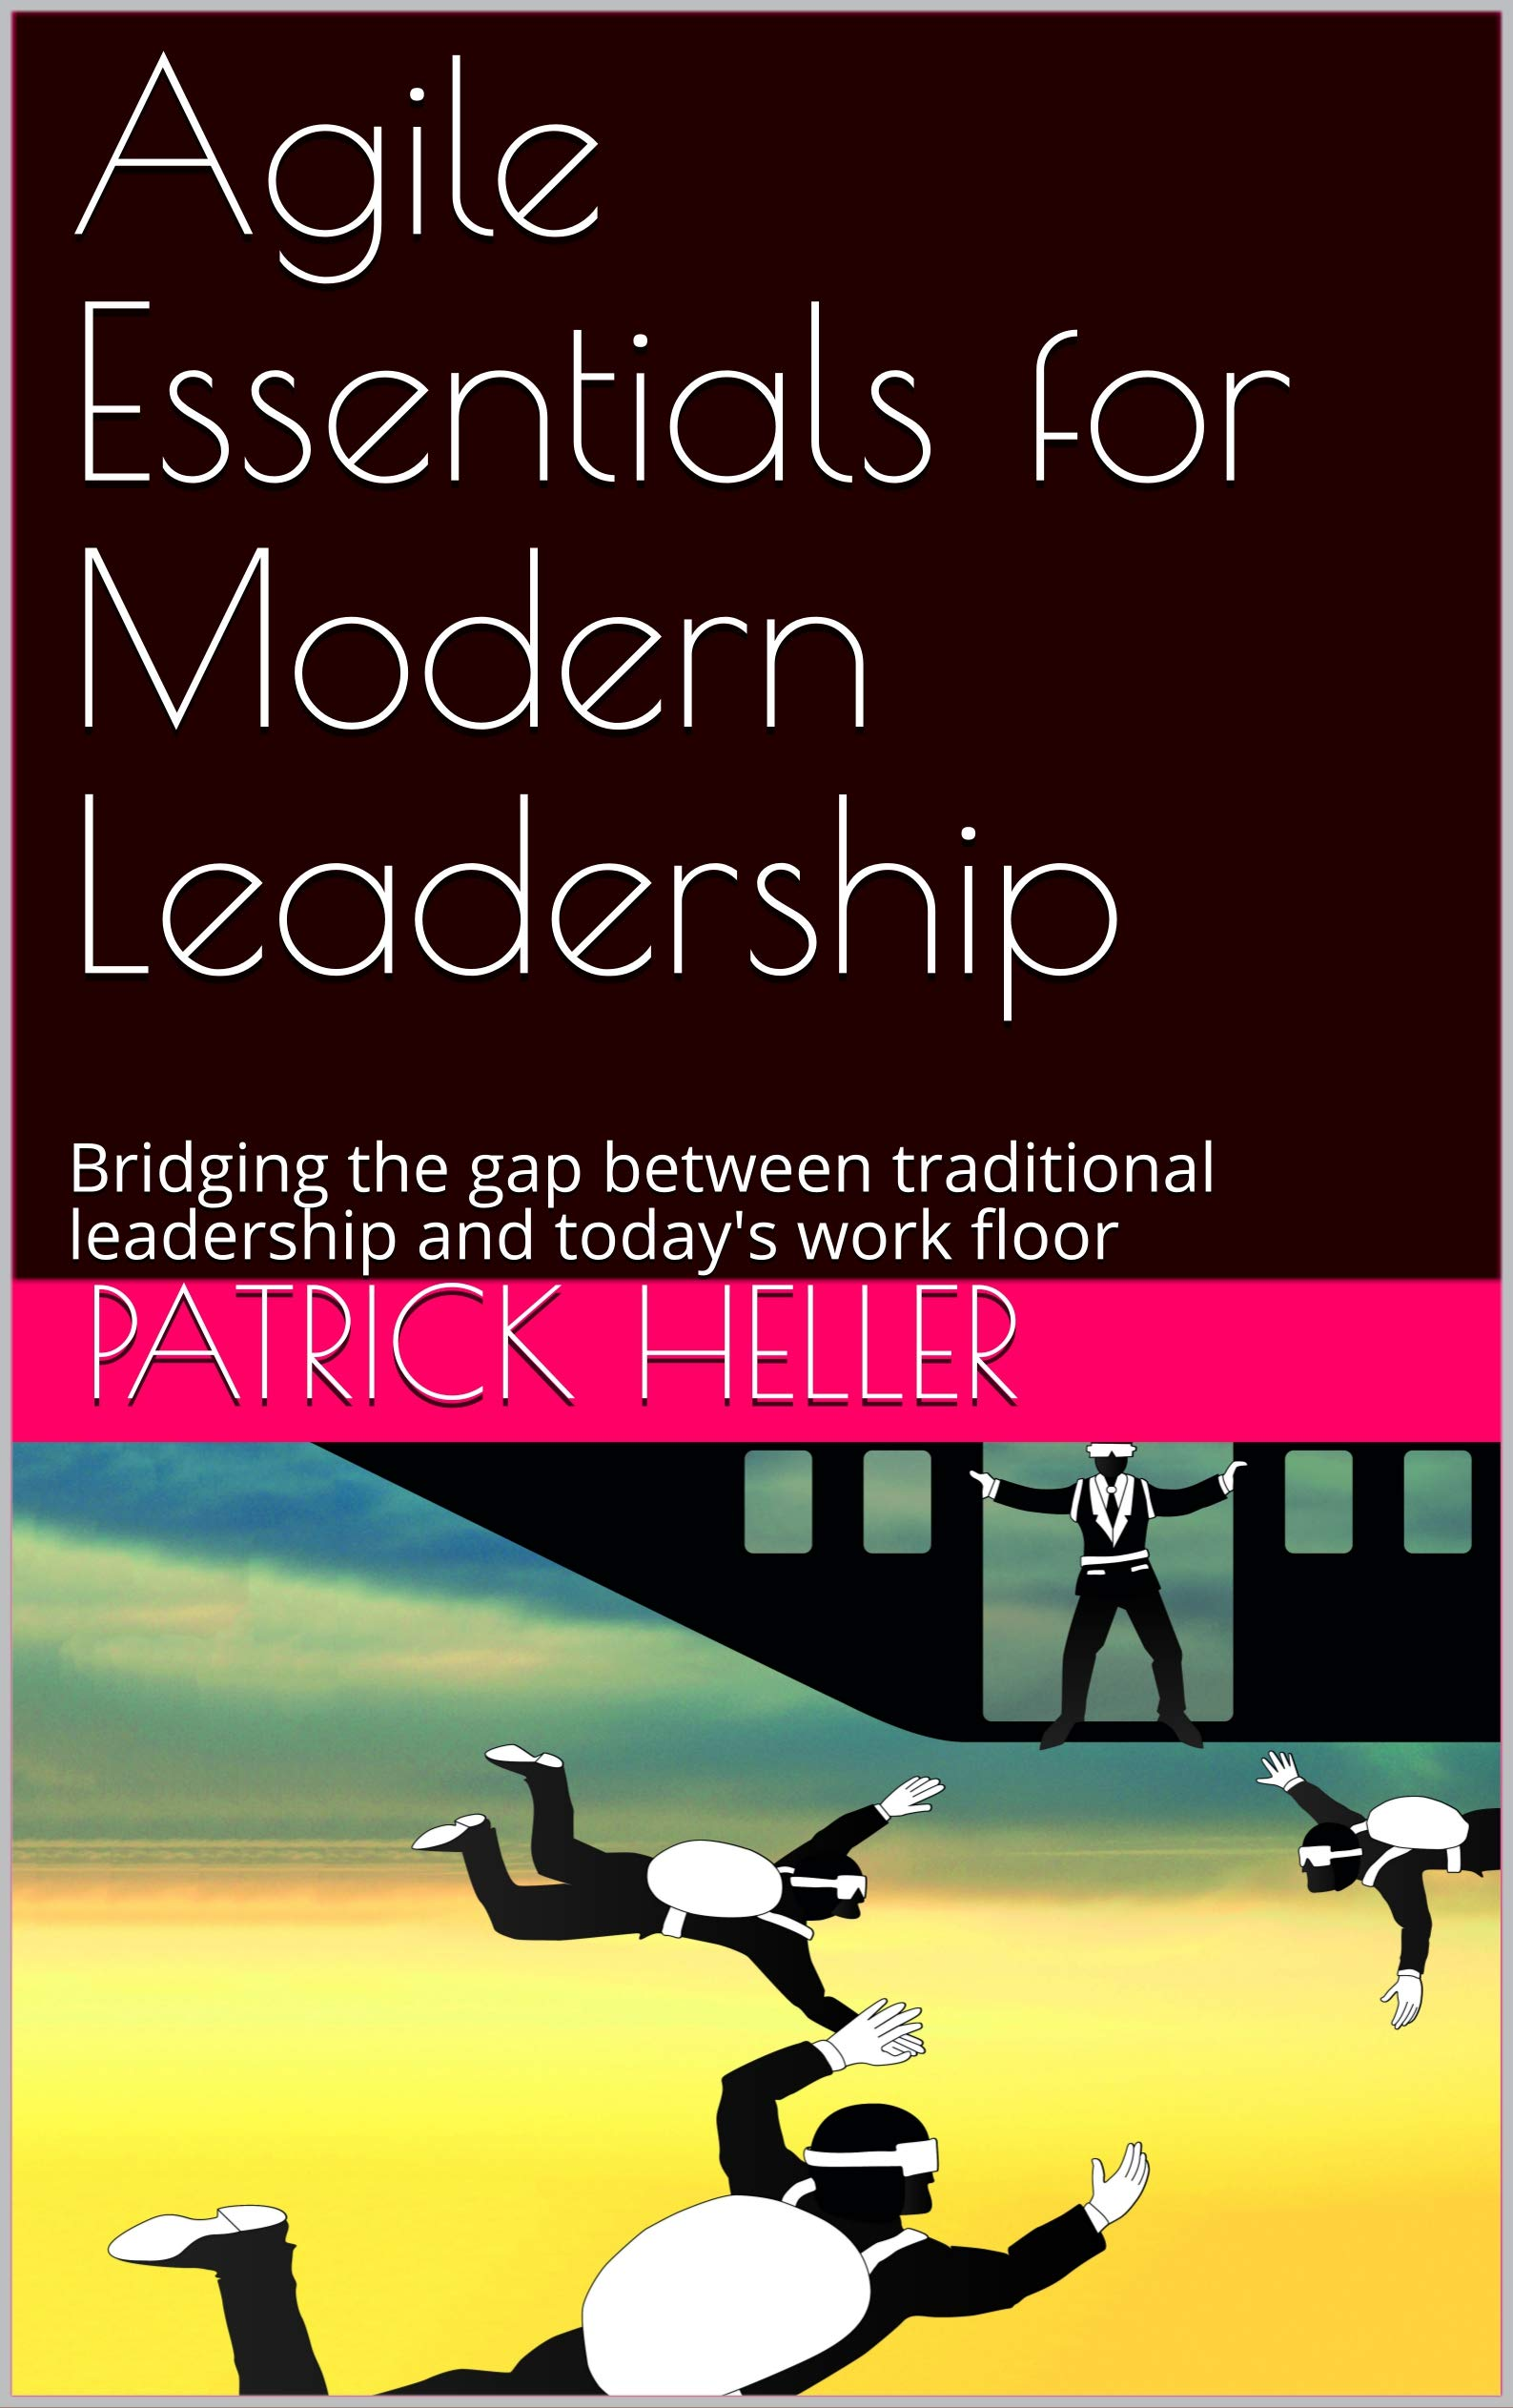 Agile Essentials for Modern Leadership: Bridging the gap between traditional leadership and today's work floor